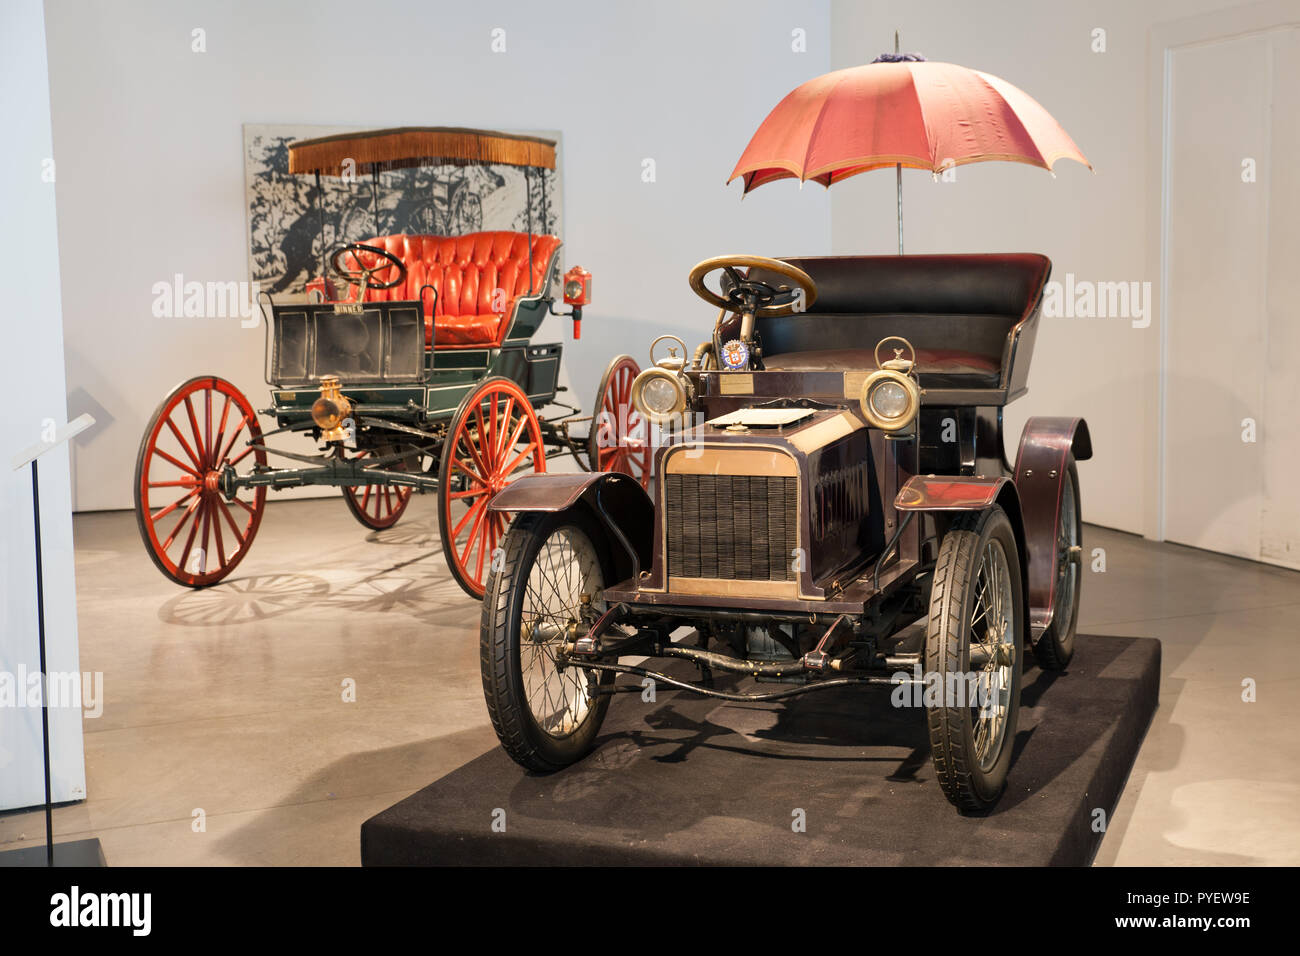 Malaga, Spain: April 28, 2013: Minerva Type A classic car. Minerva was a respected car manufacturer early 20th century. The company was also called a  - Stock Image